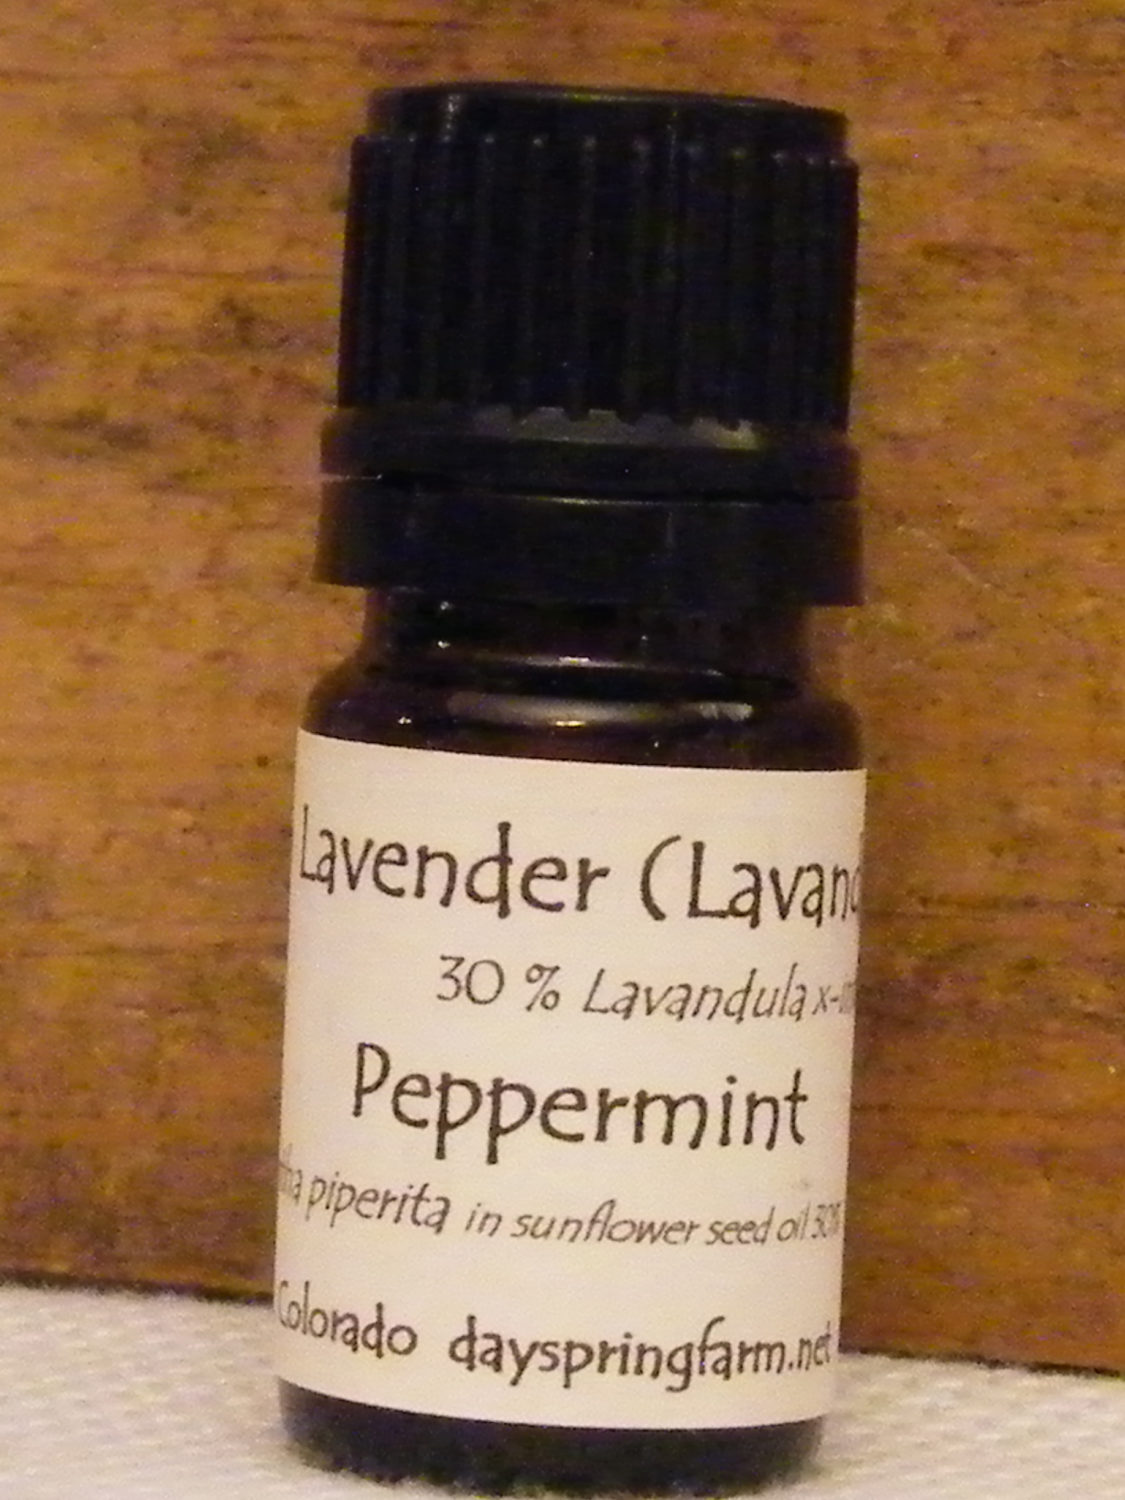 Lavender Peppermint Essential Oil made in Colorado